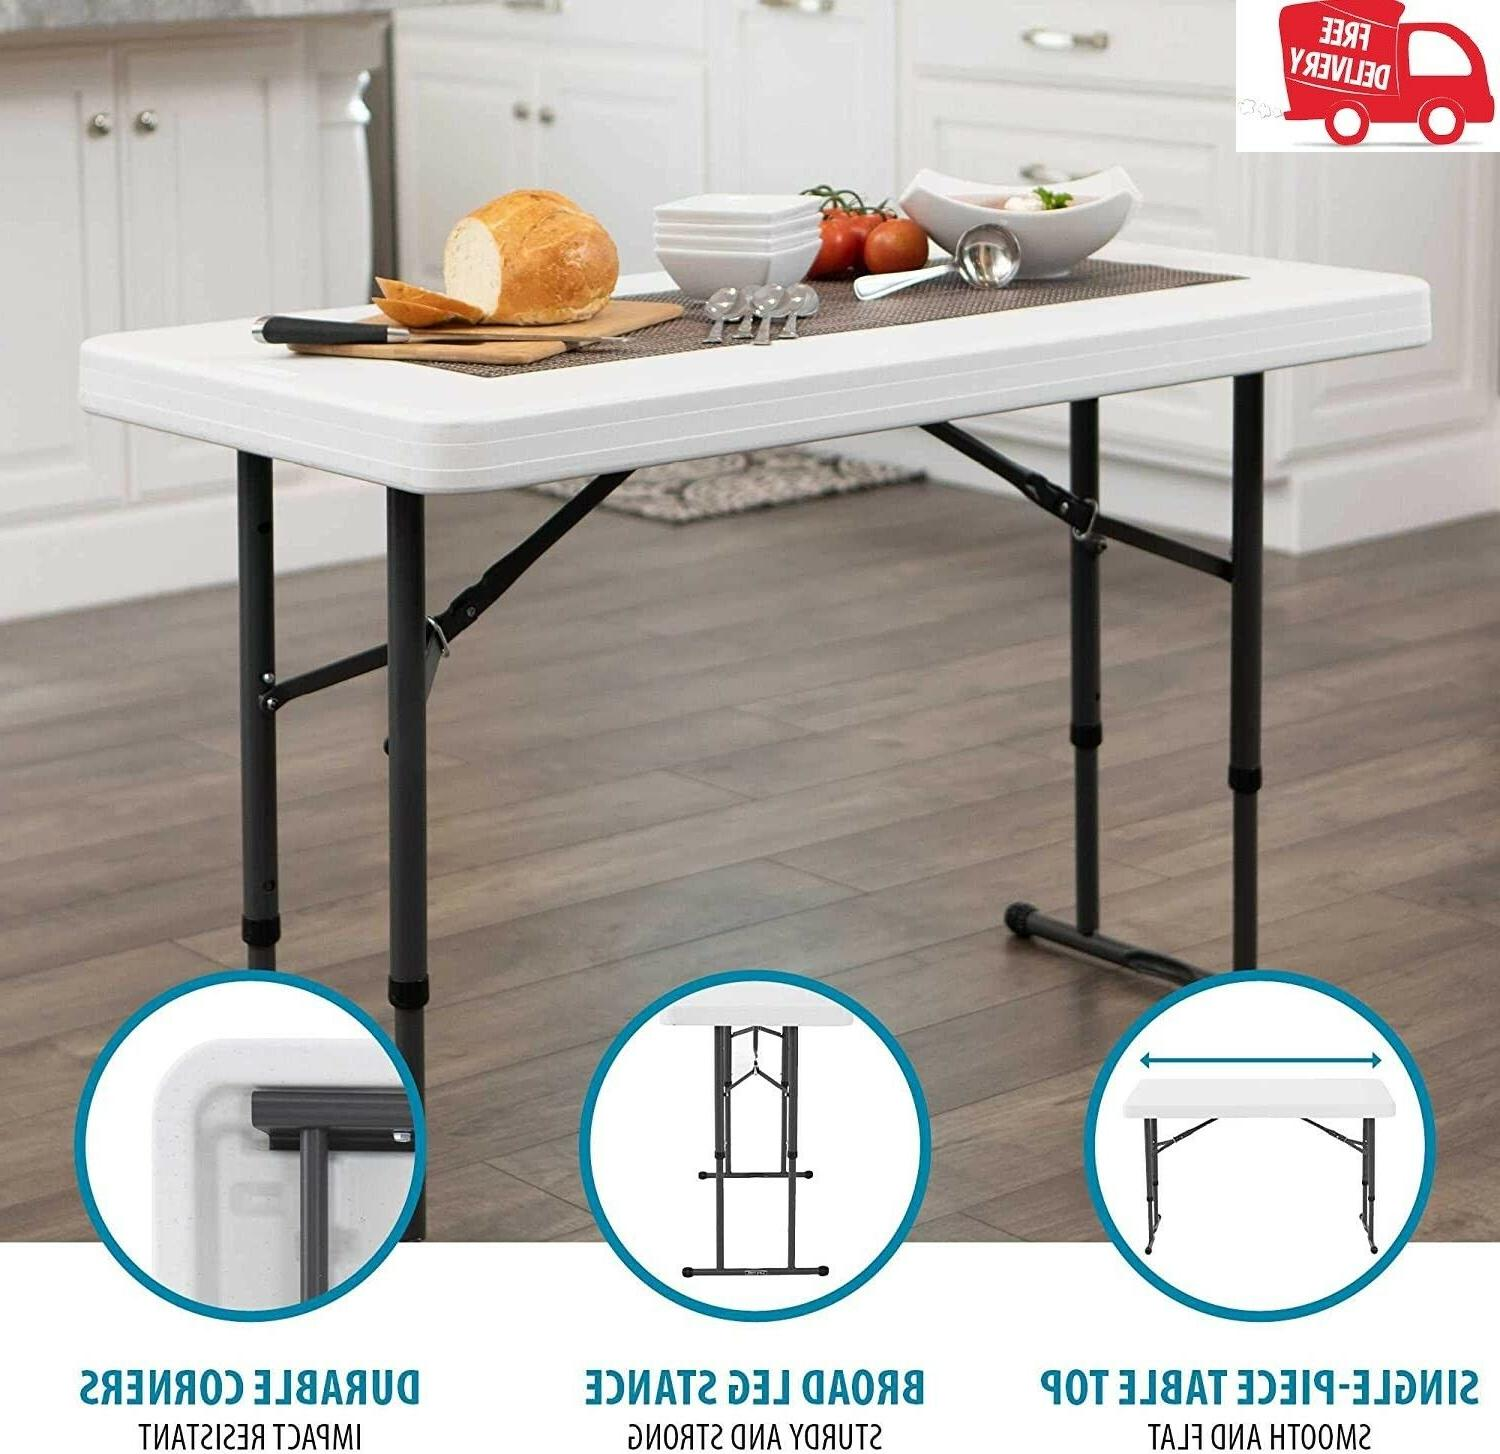 Lifetime 80160 Commercial Height Adjustable Table, 4 Feet,